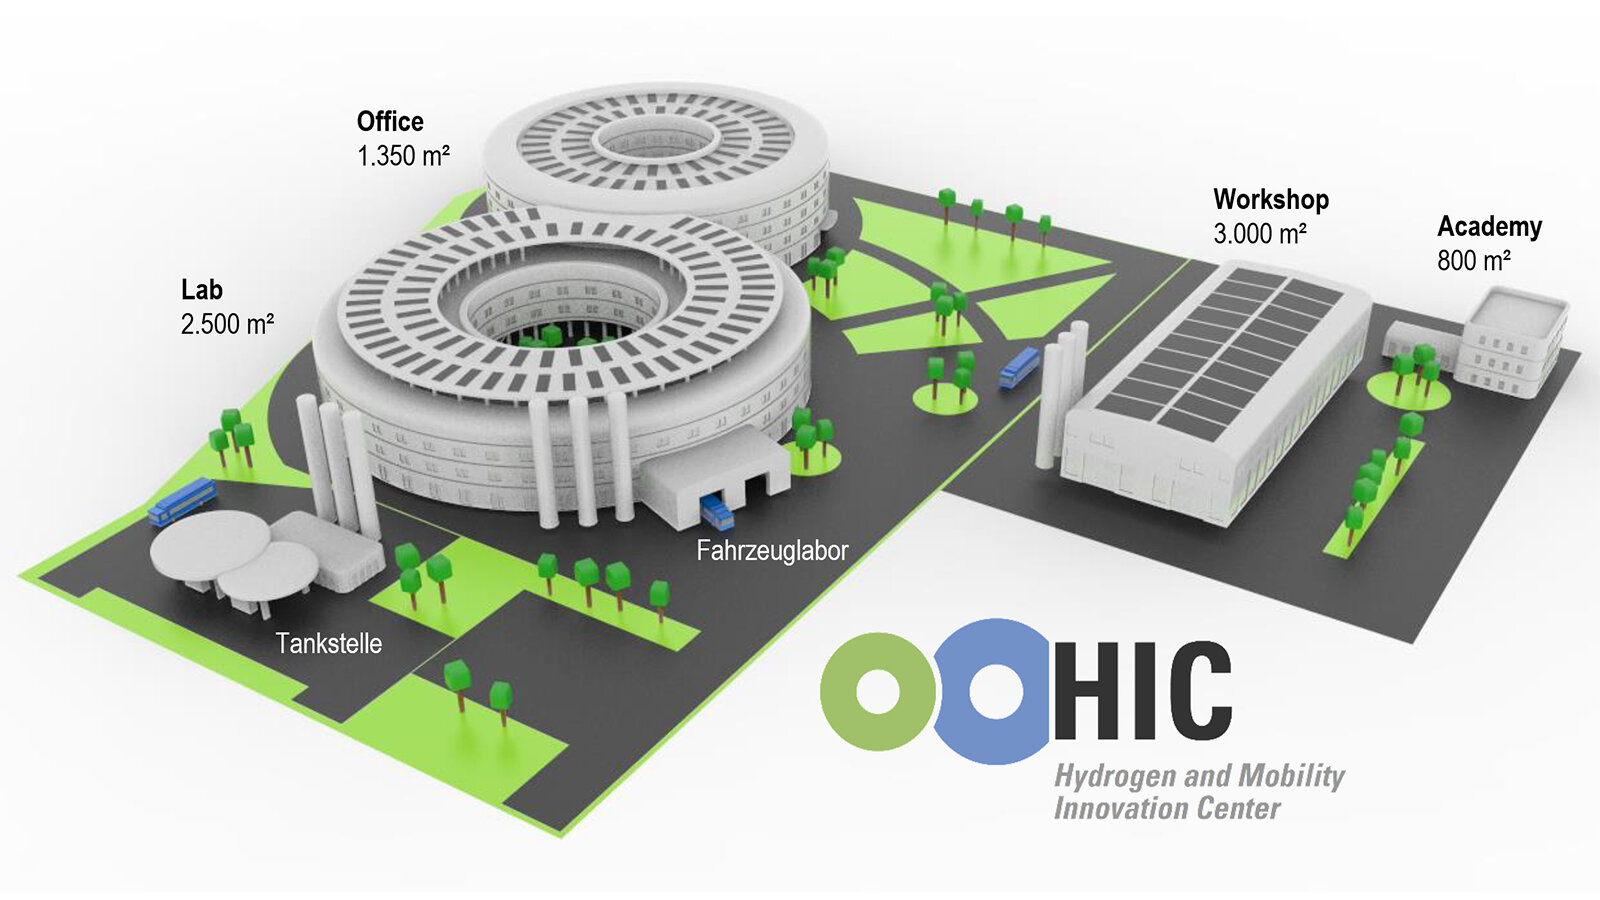 Graphic showing a visualization of the Hydrogen and Mobility Innovation Center